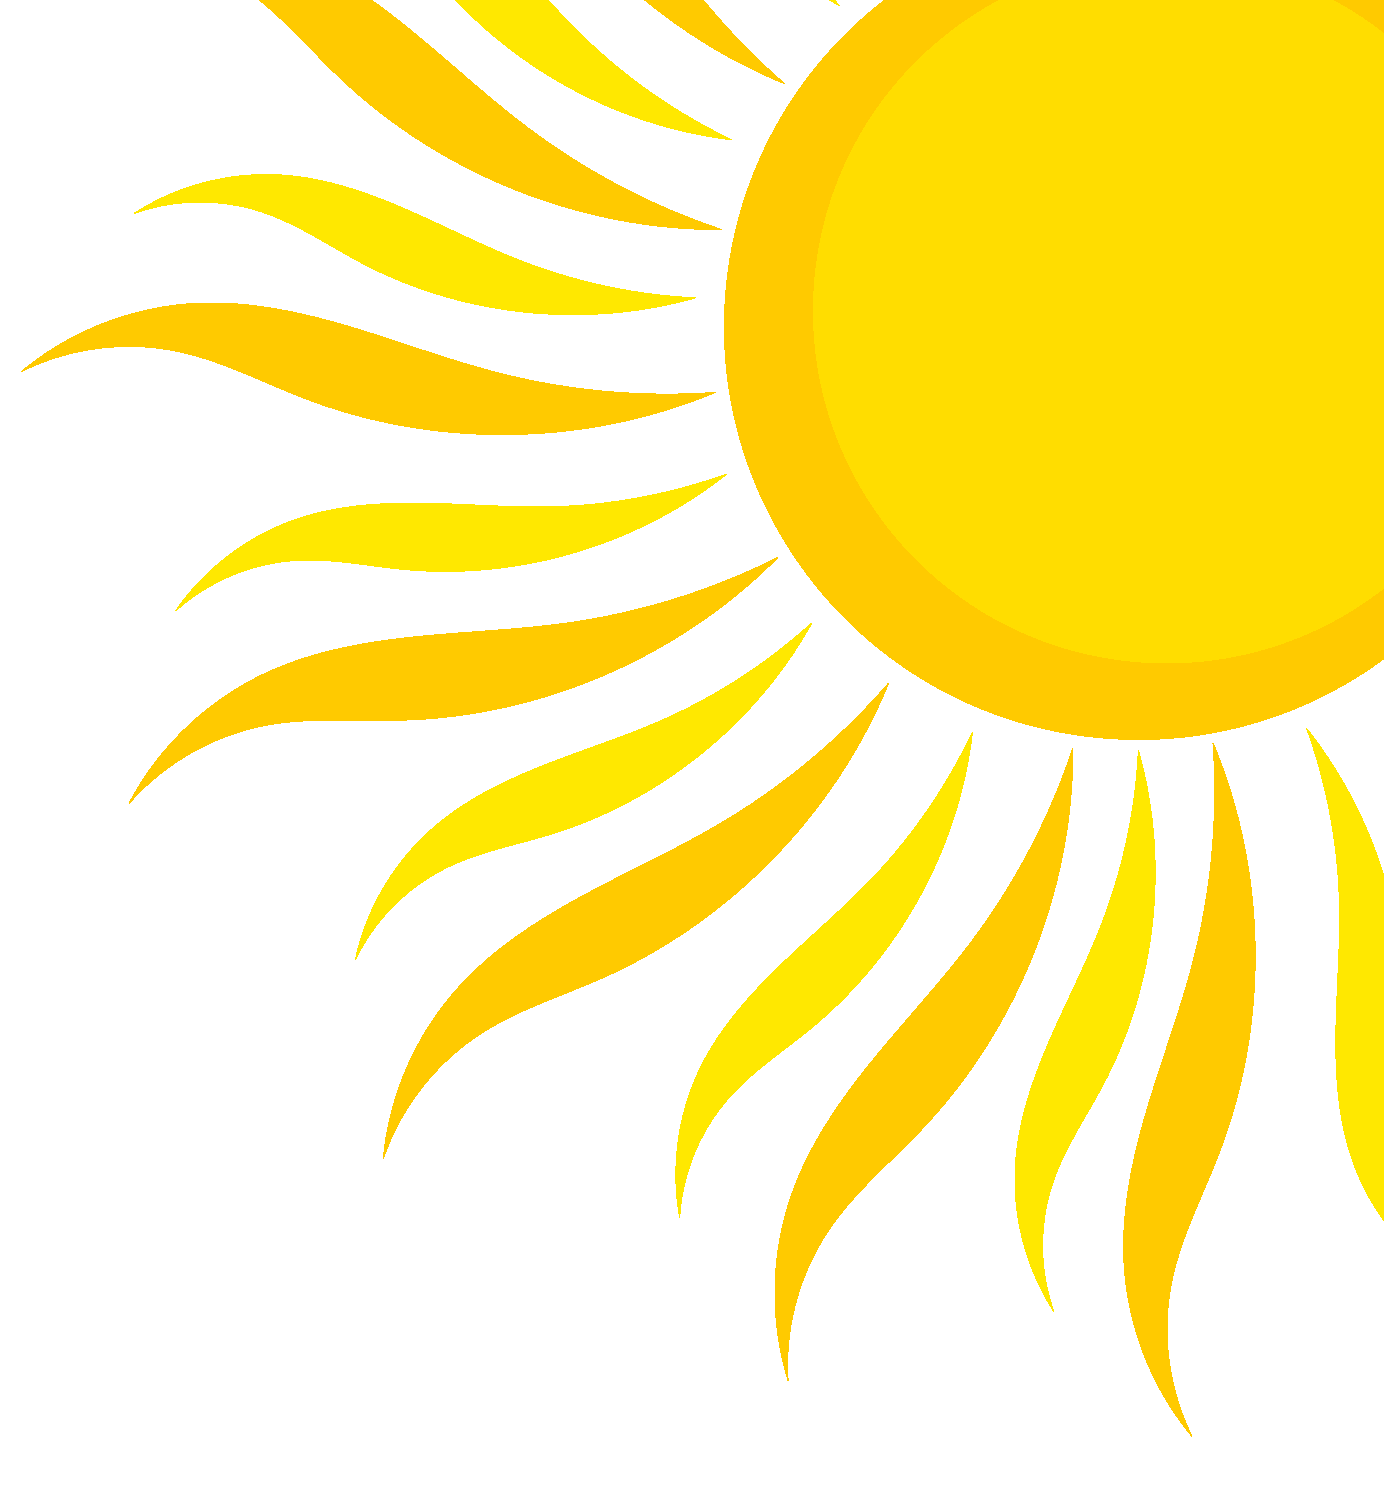 Summer Sun Png 41157 Free Icons And Png Backgrounds